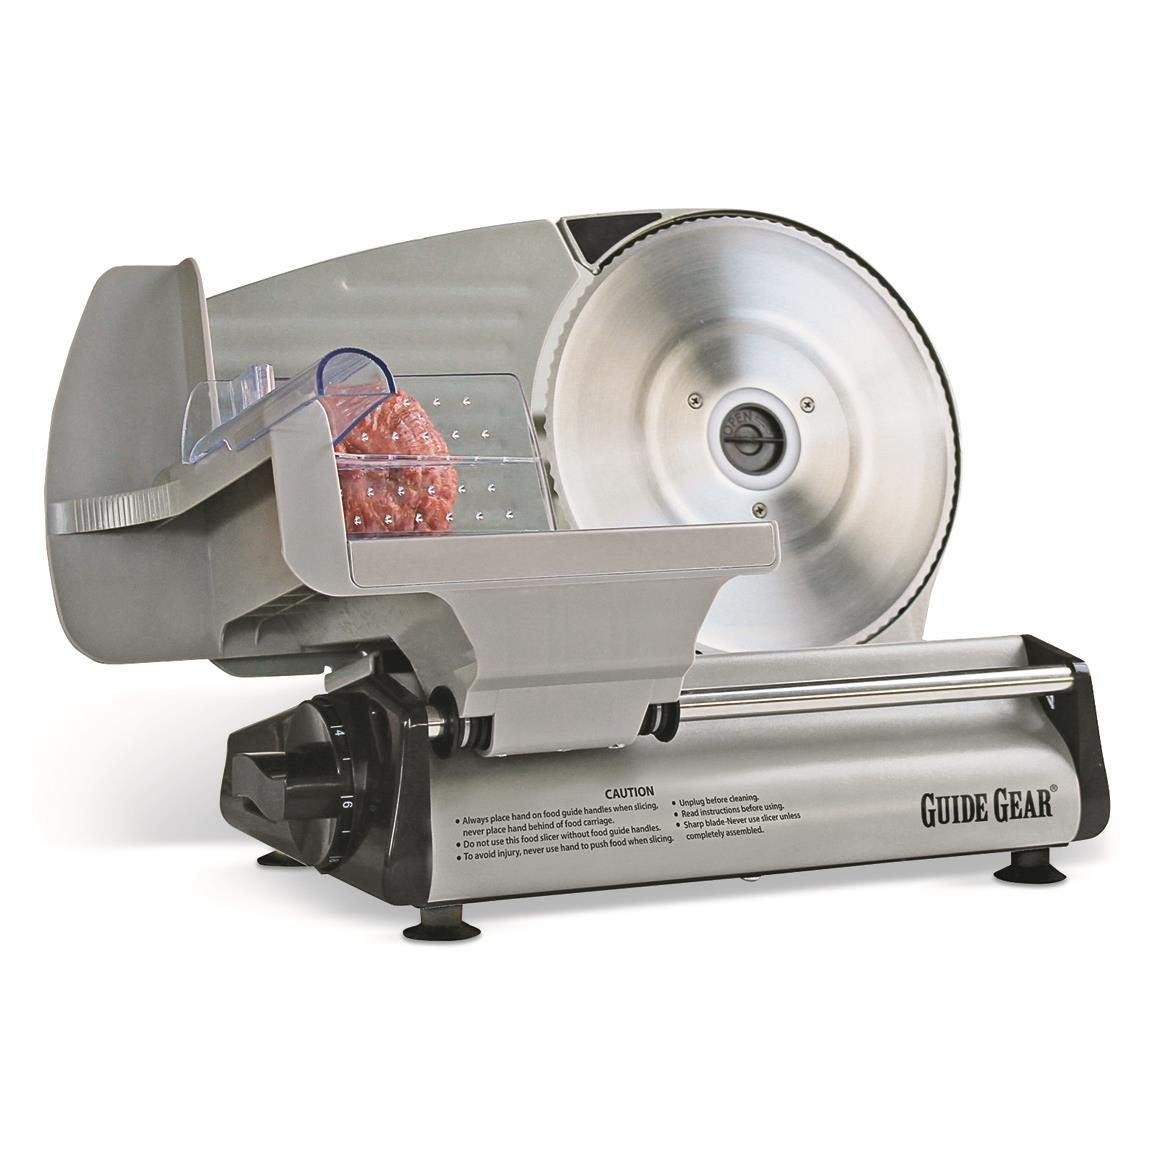 Guide Gear 8.7'' Electric Meat Slicer by Guide Gear